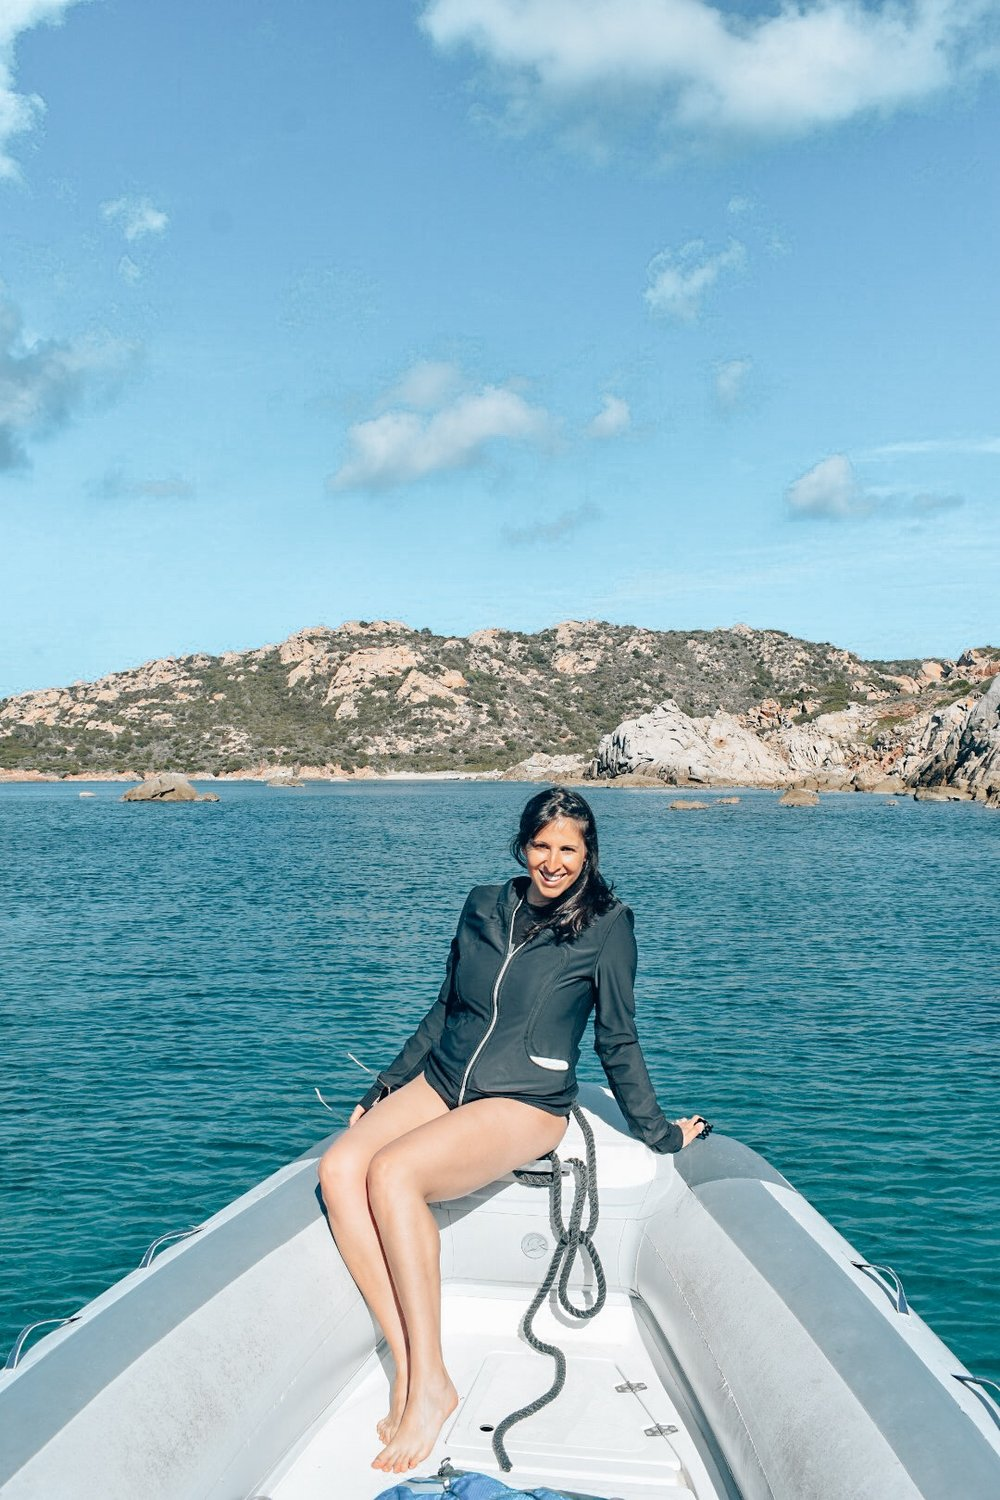 One of my favorite memories - sailing around La Maddalena (five months pregnant no less!)